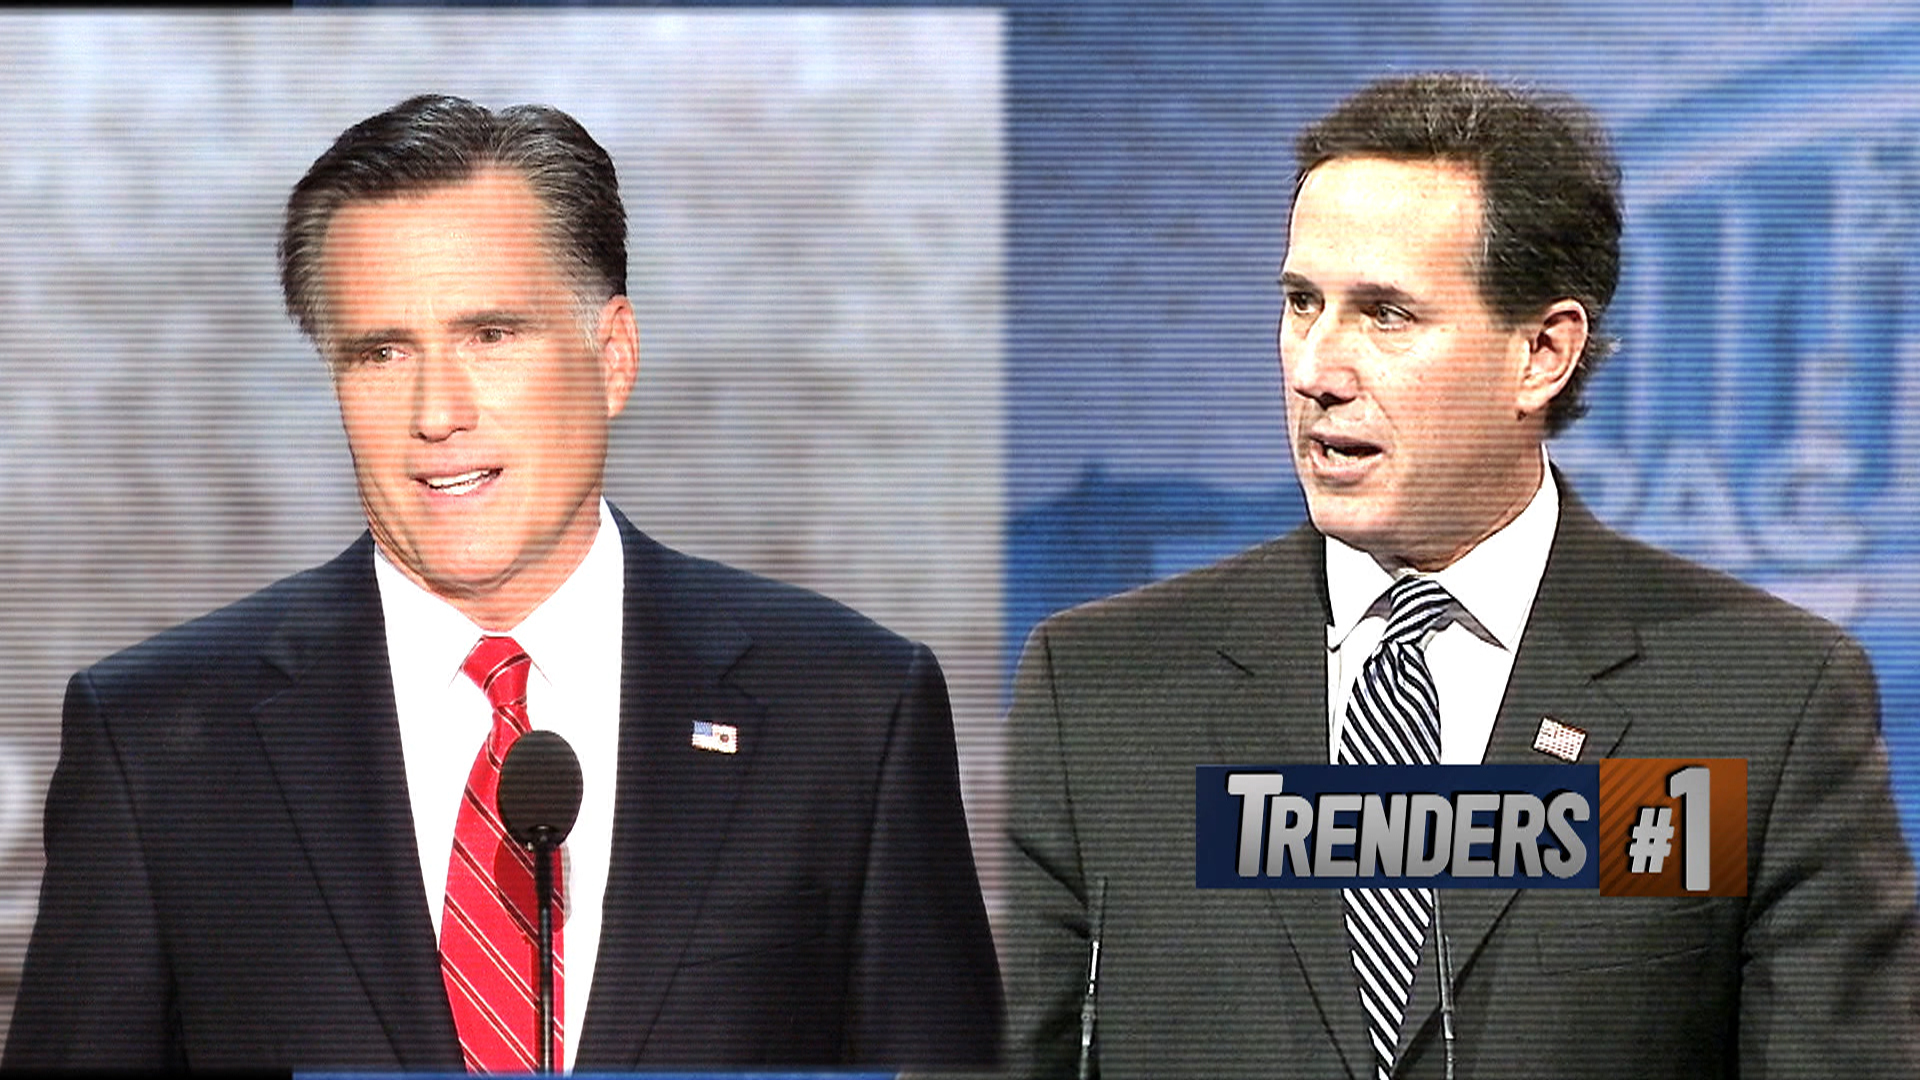 2012 GOP candidates line up to support $10.10